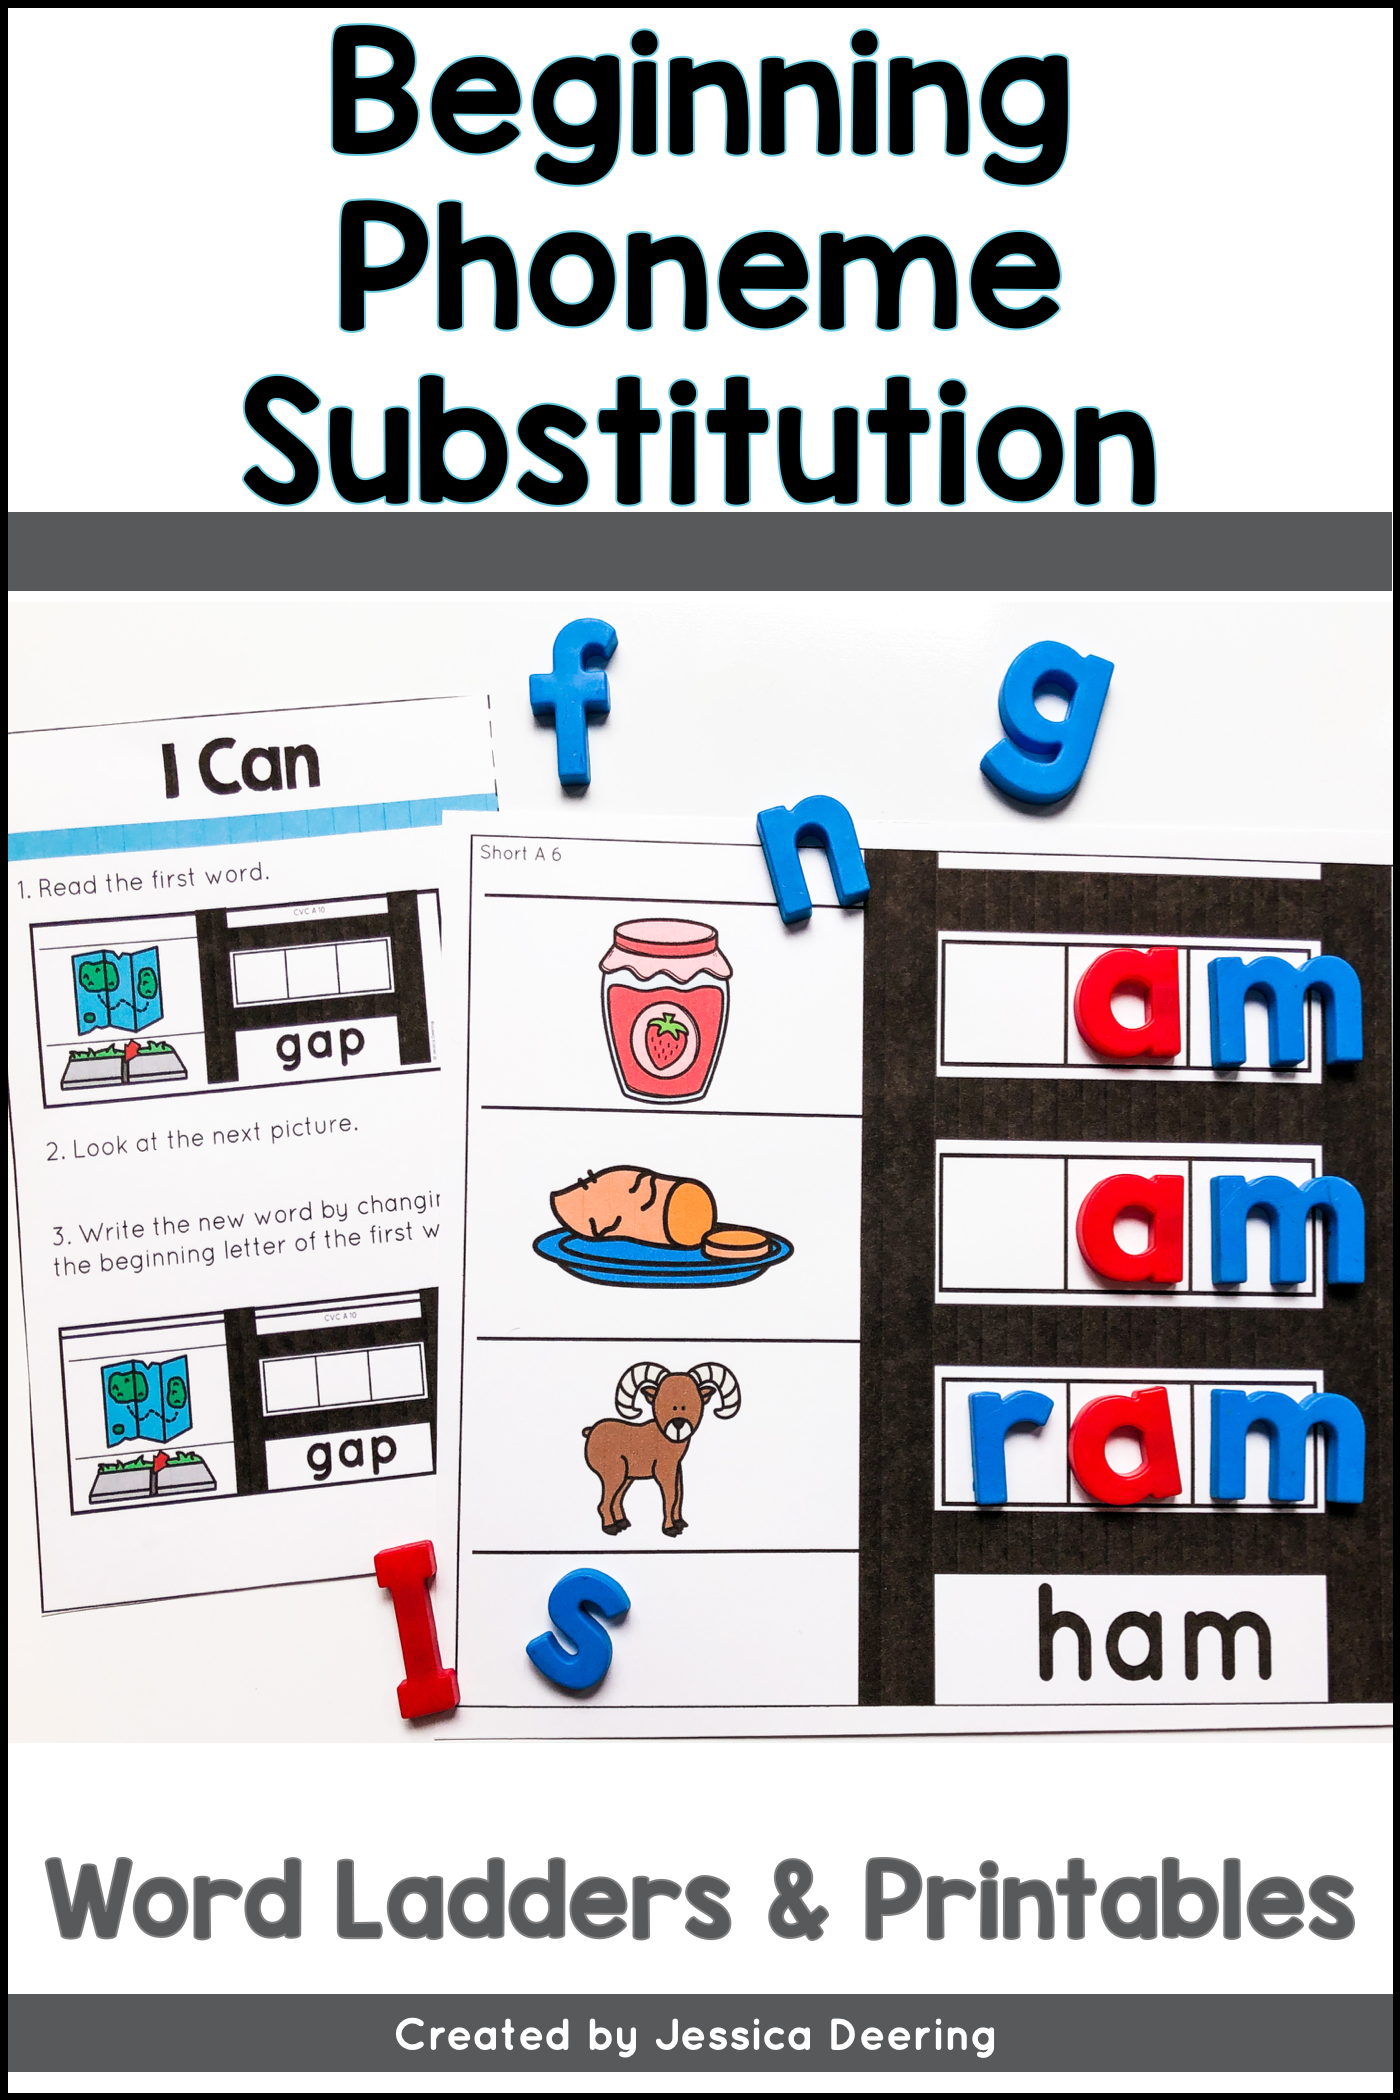 Initial Phoneme Substitution In